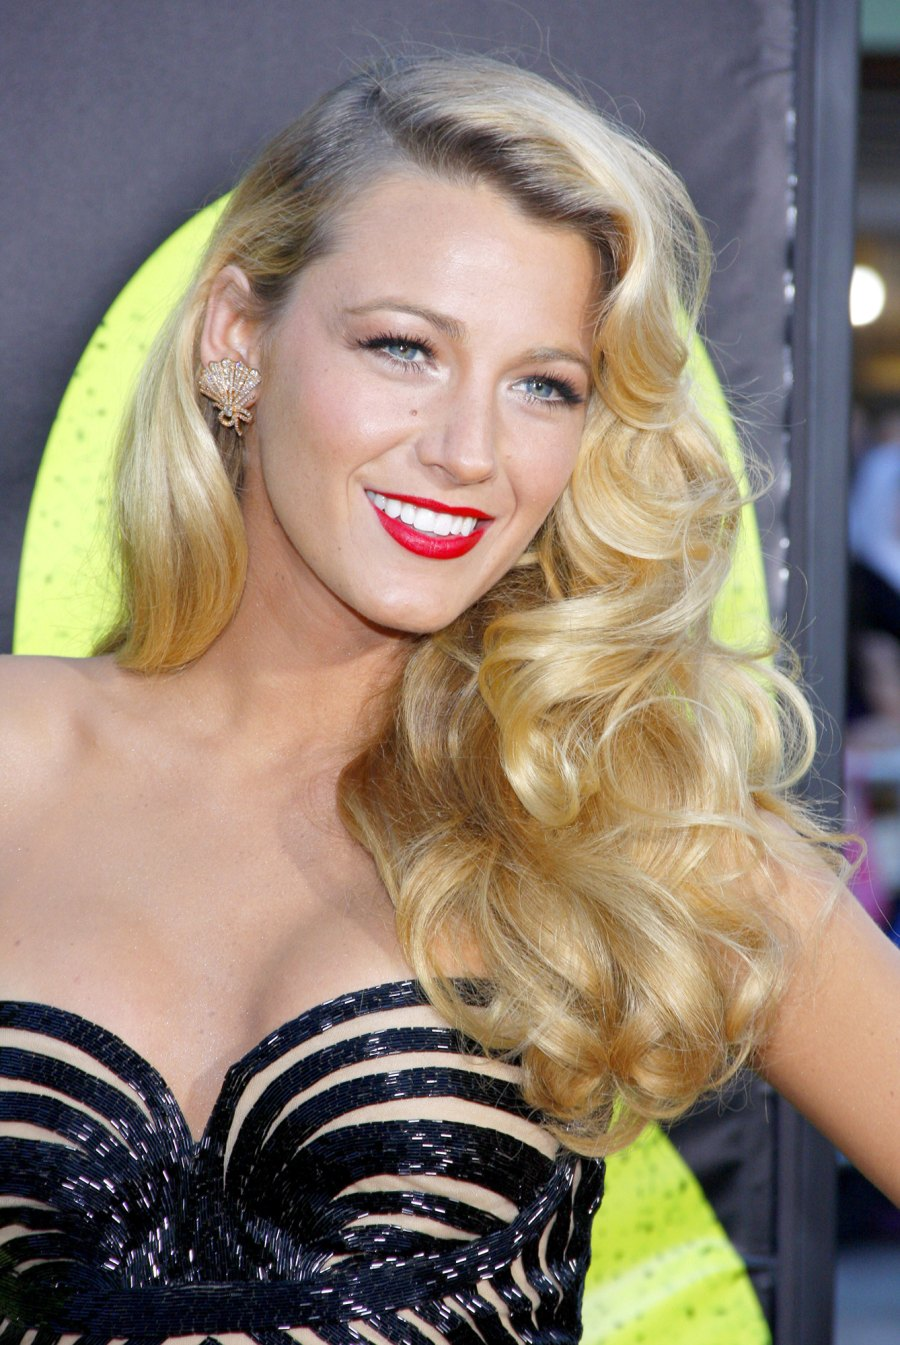 Blake Lively Through the Years